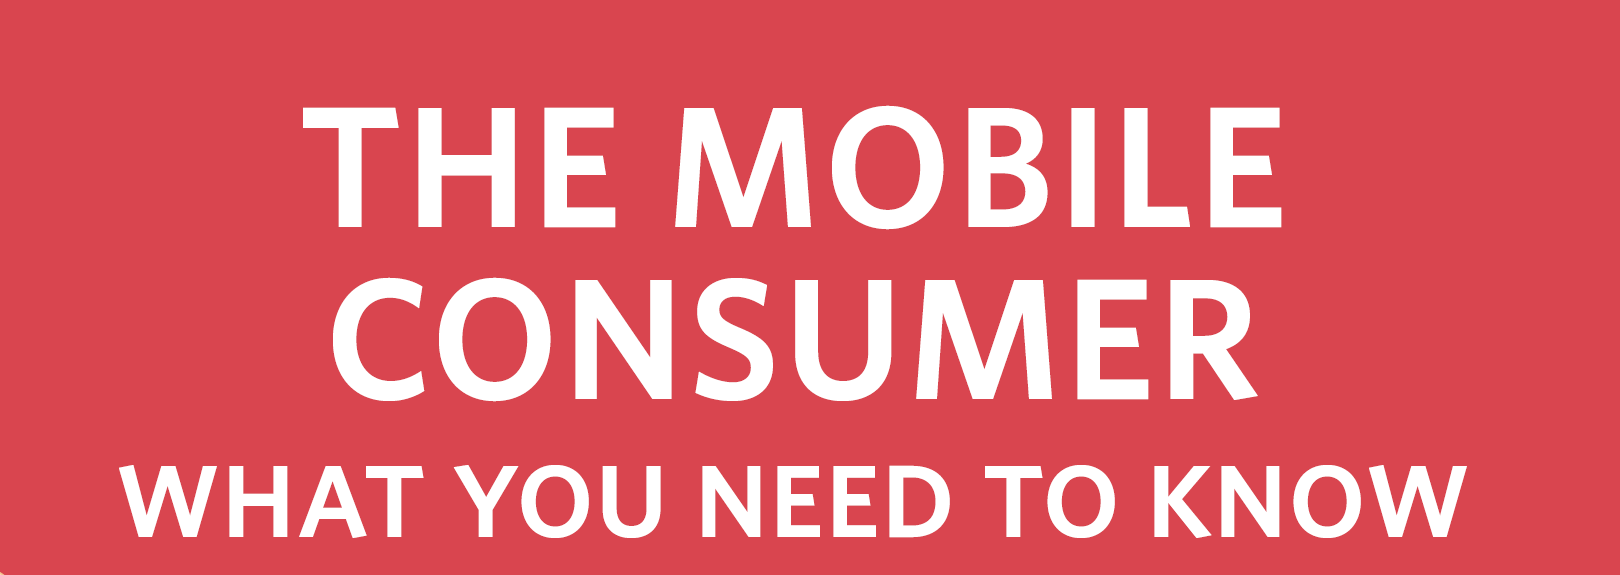 The Mobile Consumer: What you need to know